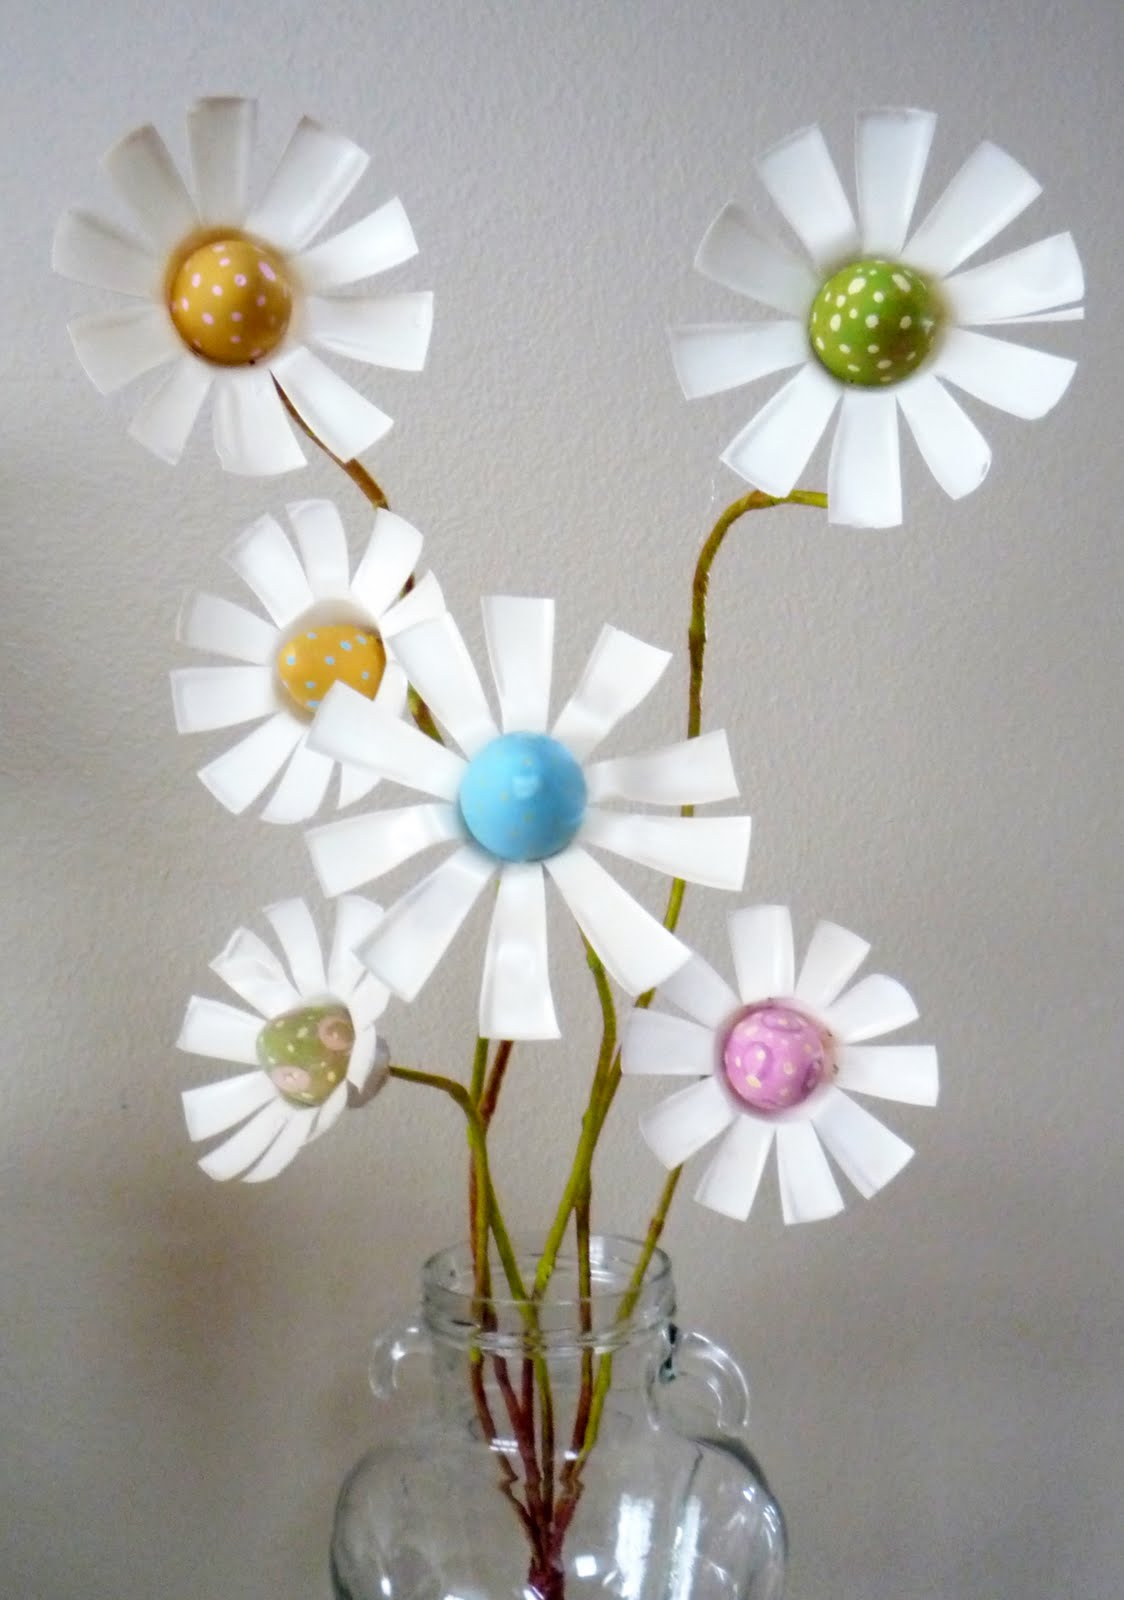 Crafty Sisters Day 3 Pop Bottle Egg Flowers